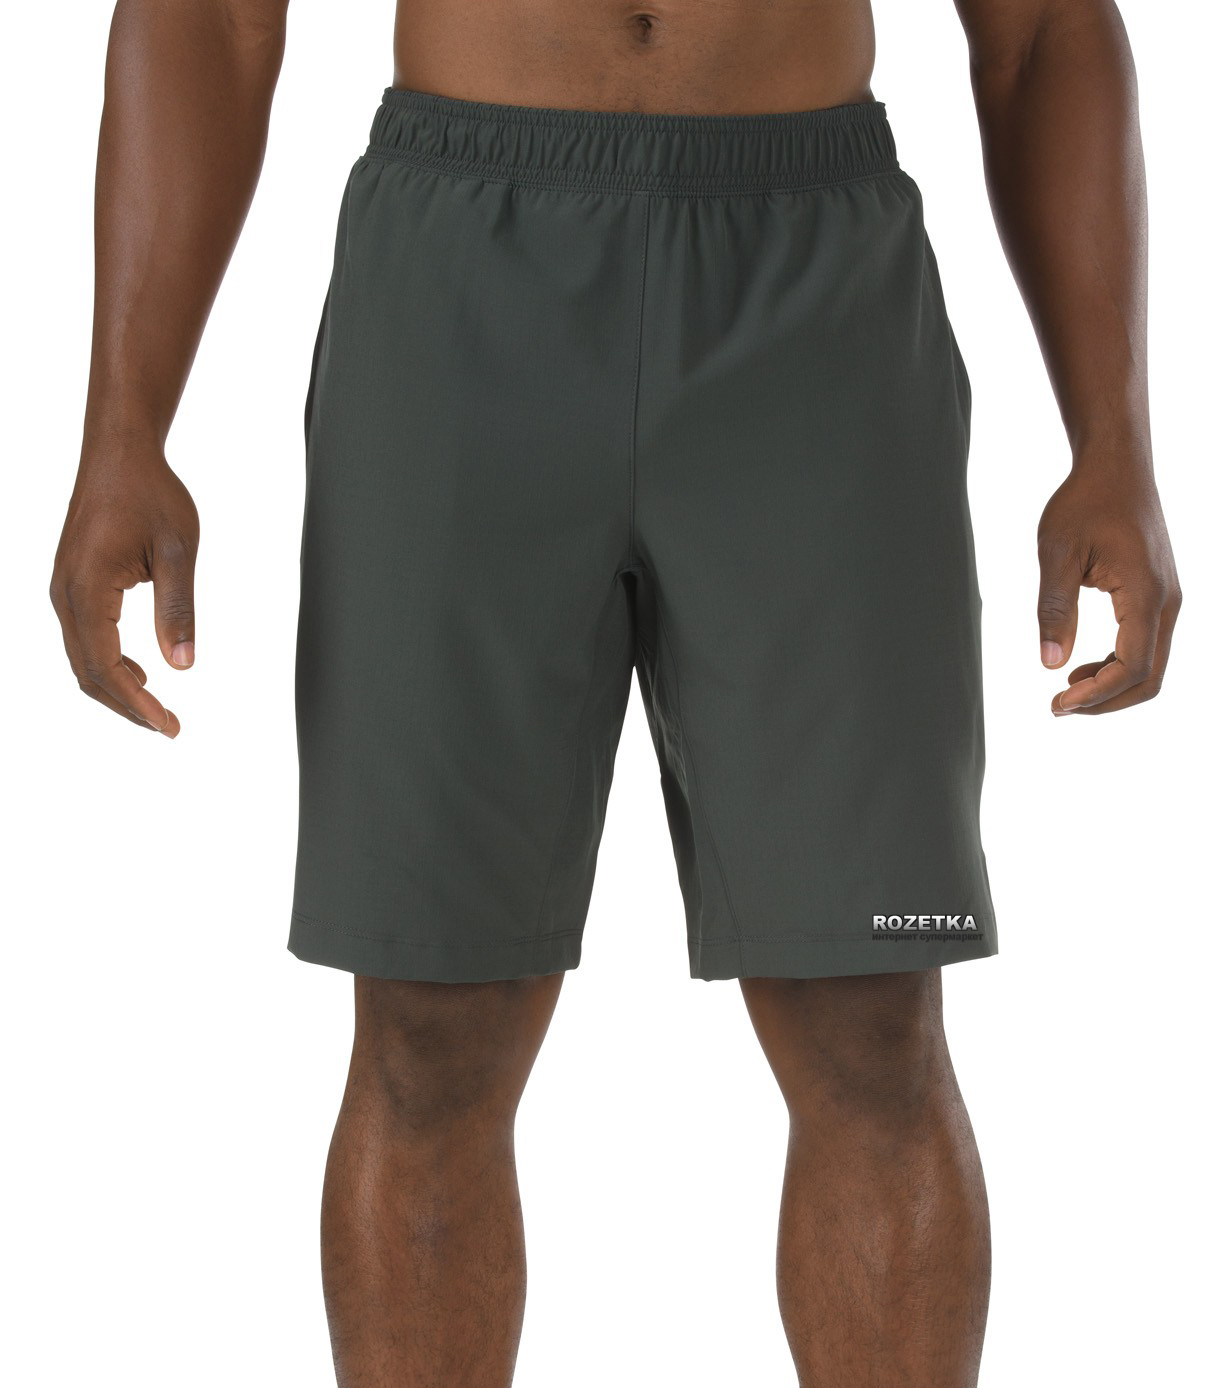 f20c47f422 Шорты тактические 5.11 Tactical Recon Training Shorts 43058 S Scorched  Earth (2000980277902)